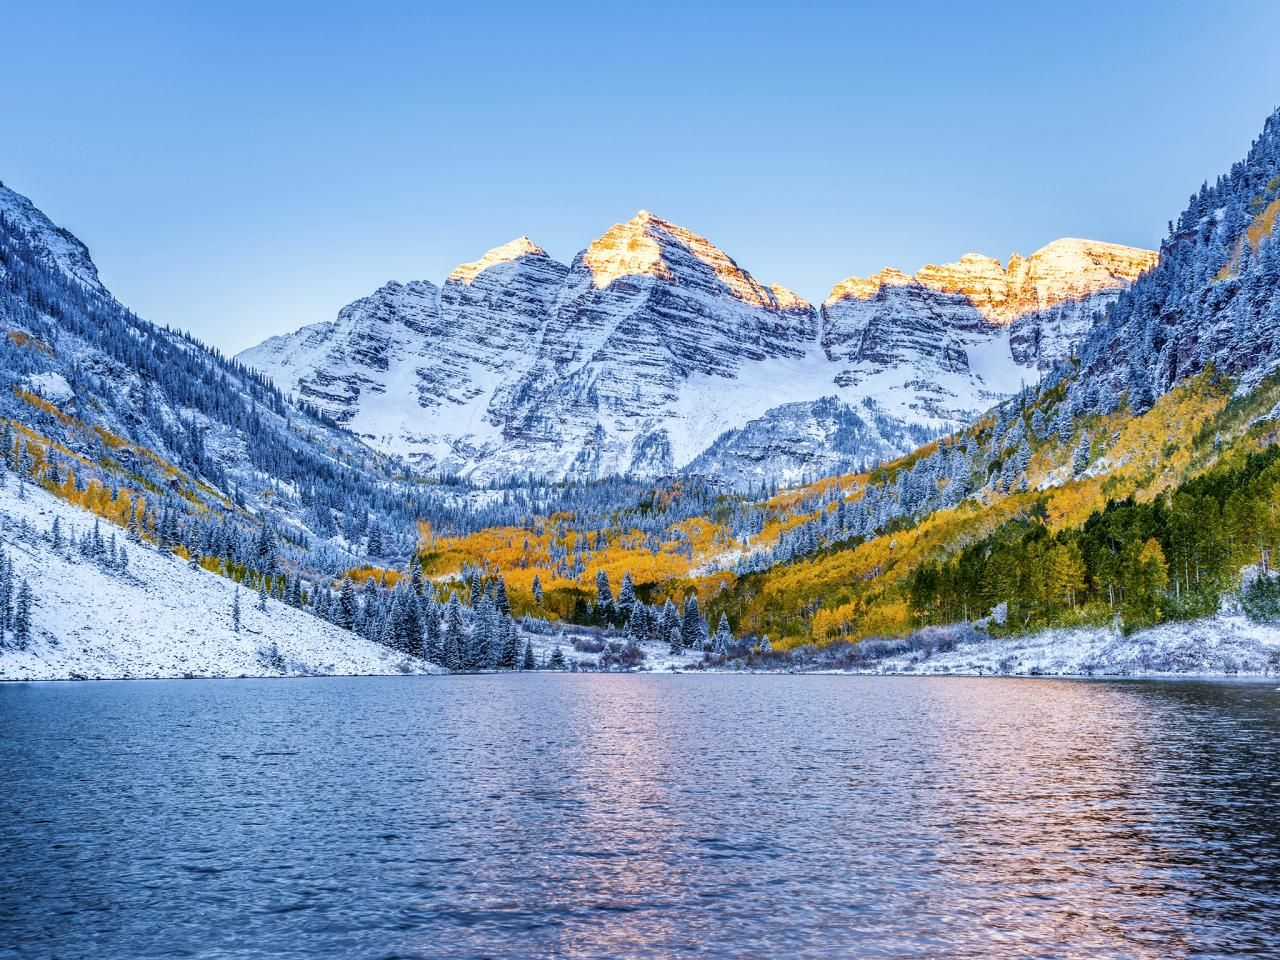 Colorado Ski Resorts Aspen Has A Well Earned Retion As Glitzy Resort Town Por With Spenders